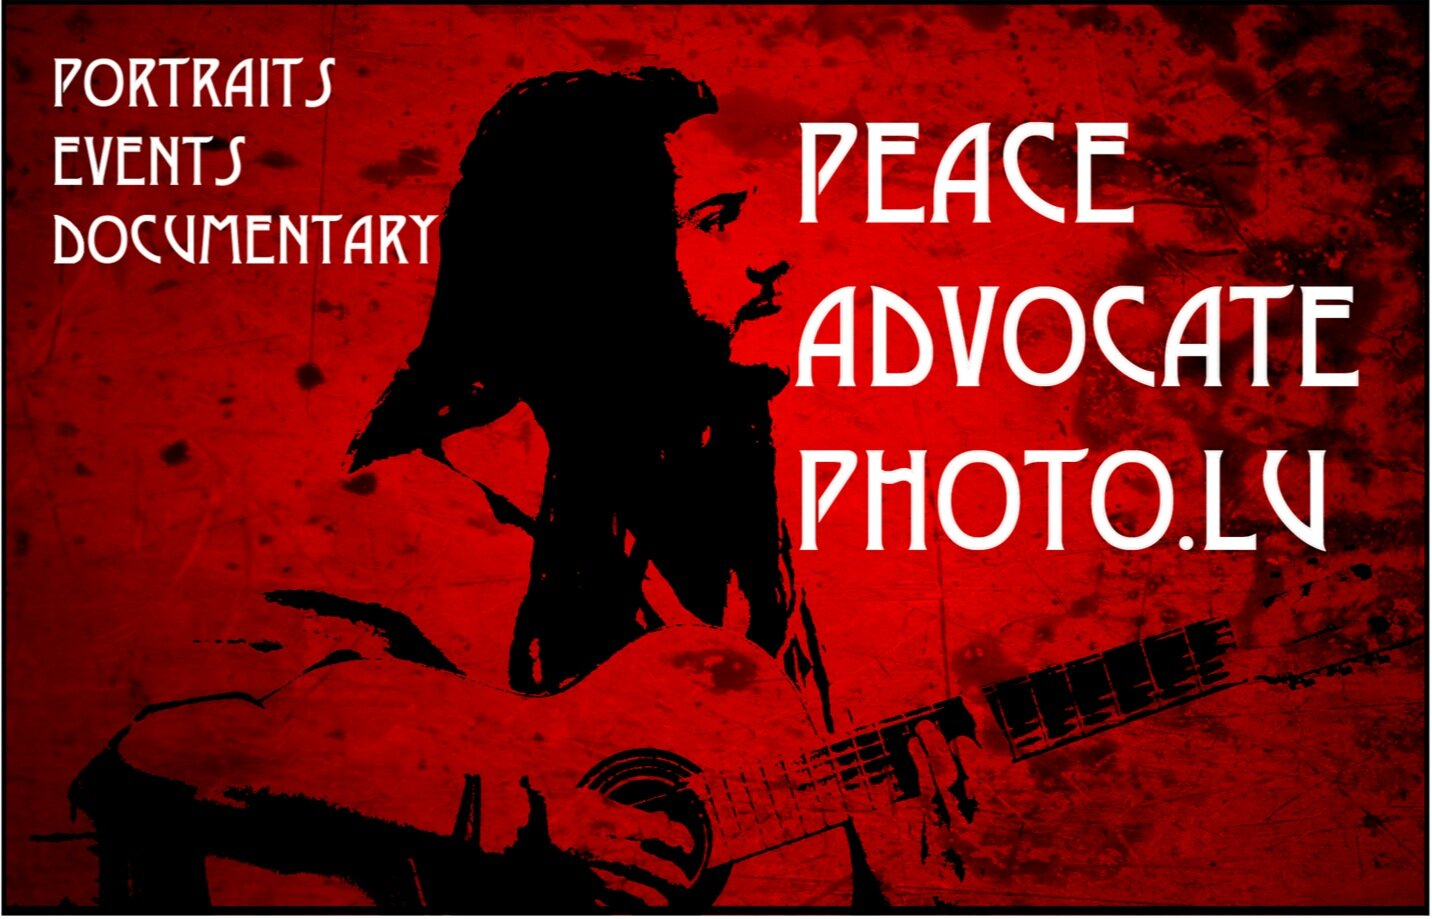 Peace Advocate Photography